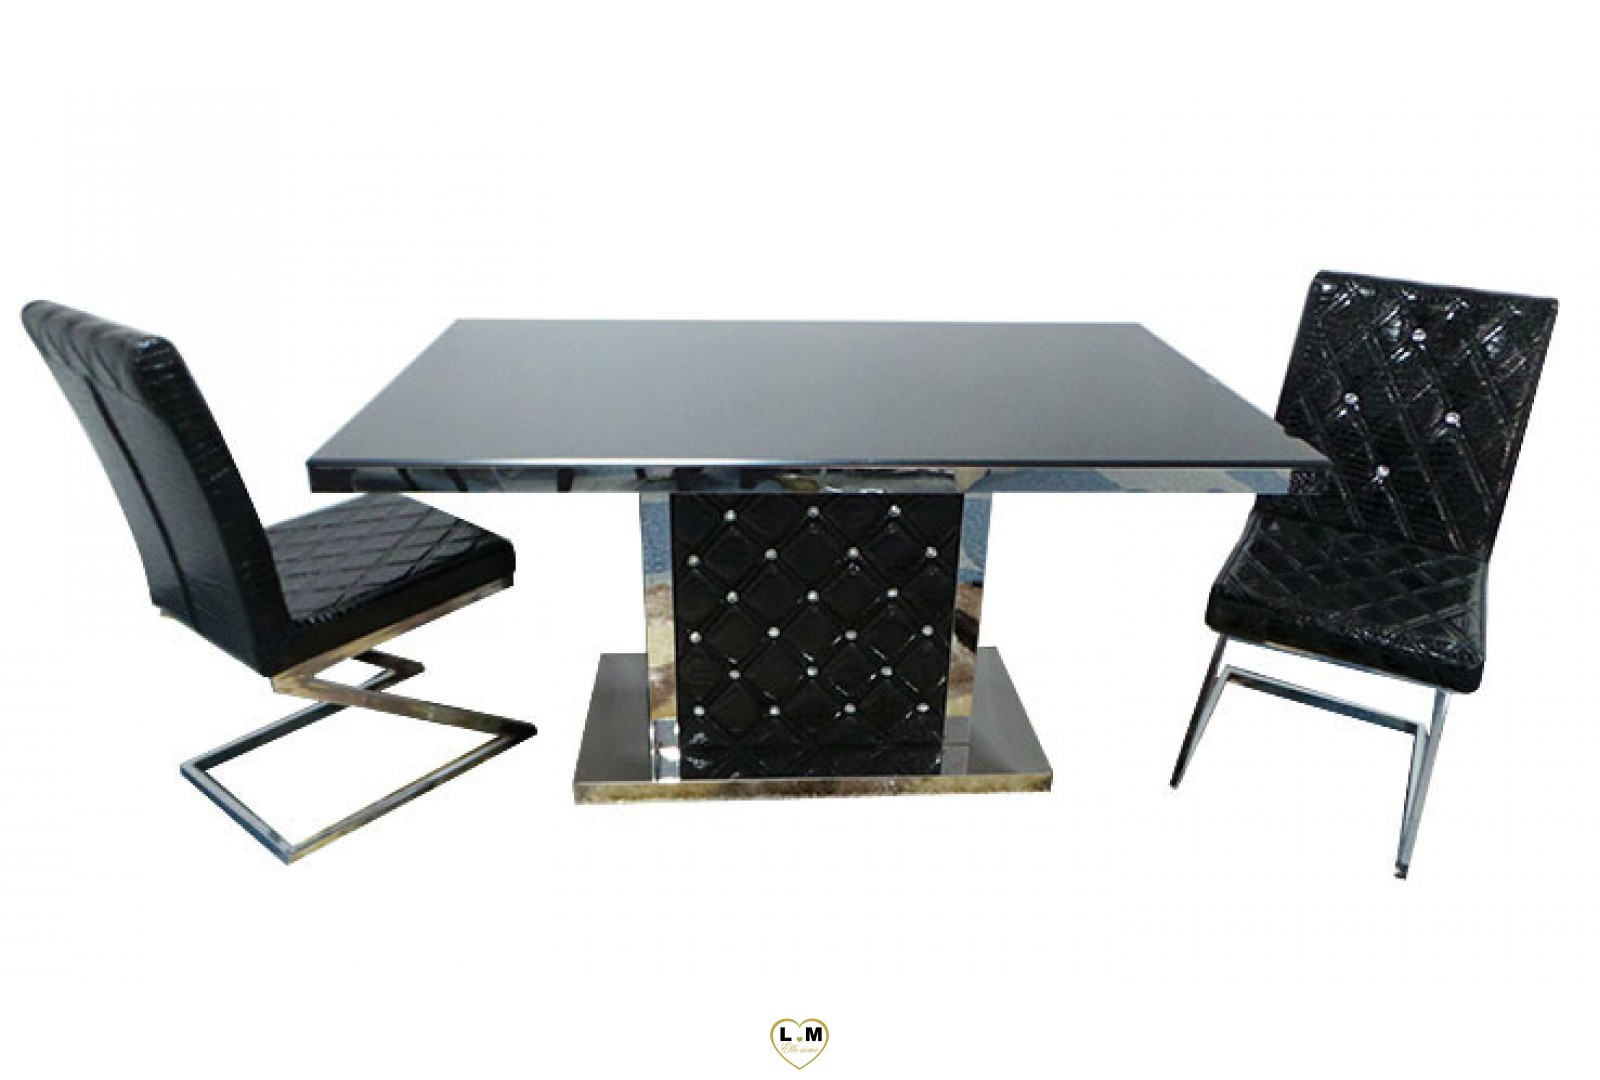 t8032n table salle a manger noire plateau verre noir. Black Bedroom Furniture Sets. Home Design Ideas